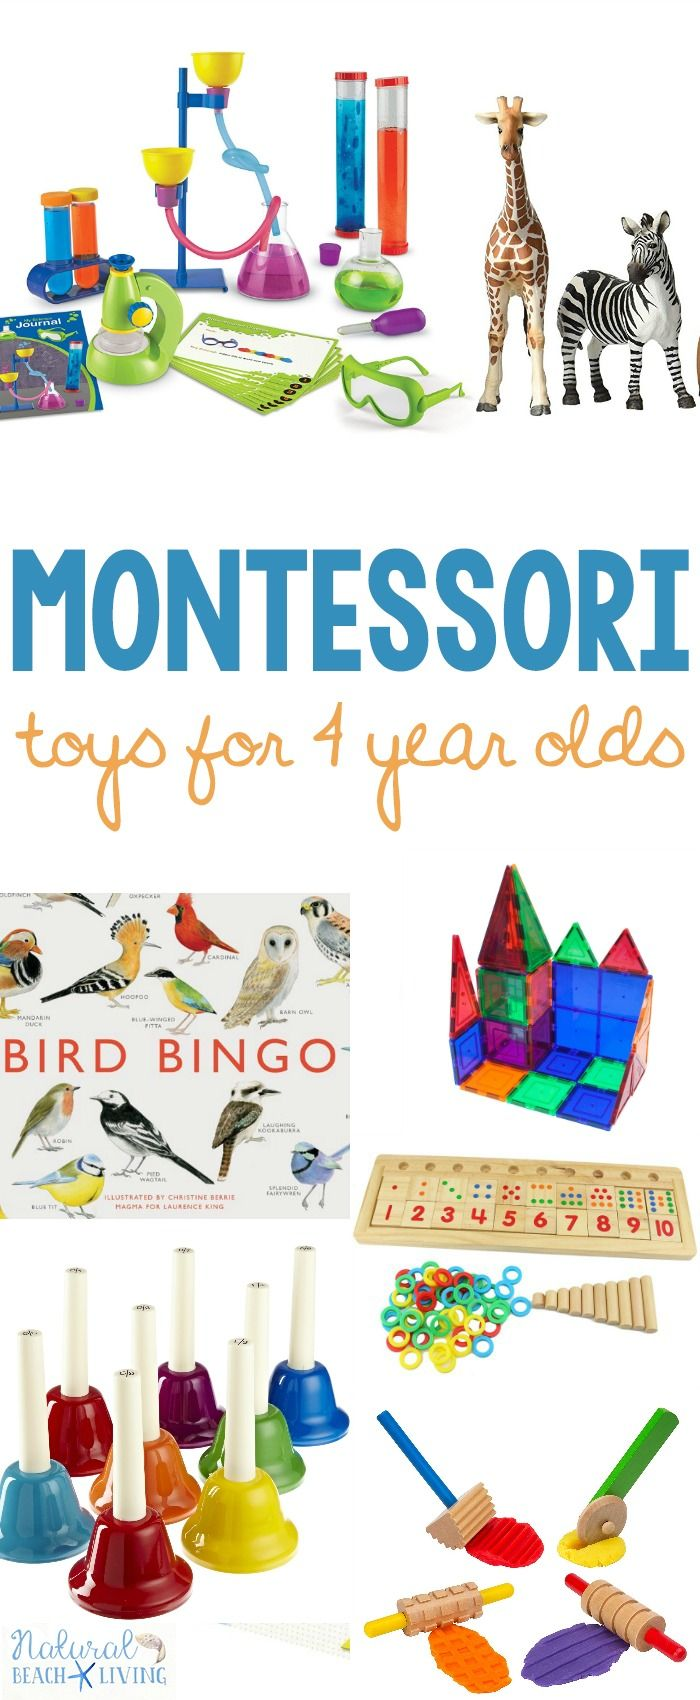 The Ultimate Guide For The Best Montessori Toys For 4 Year